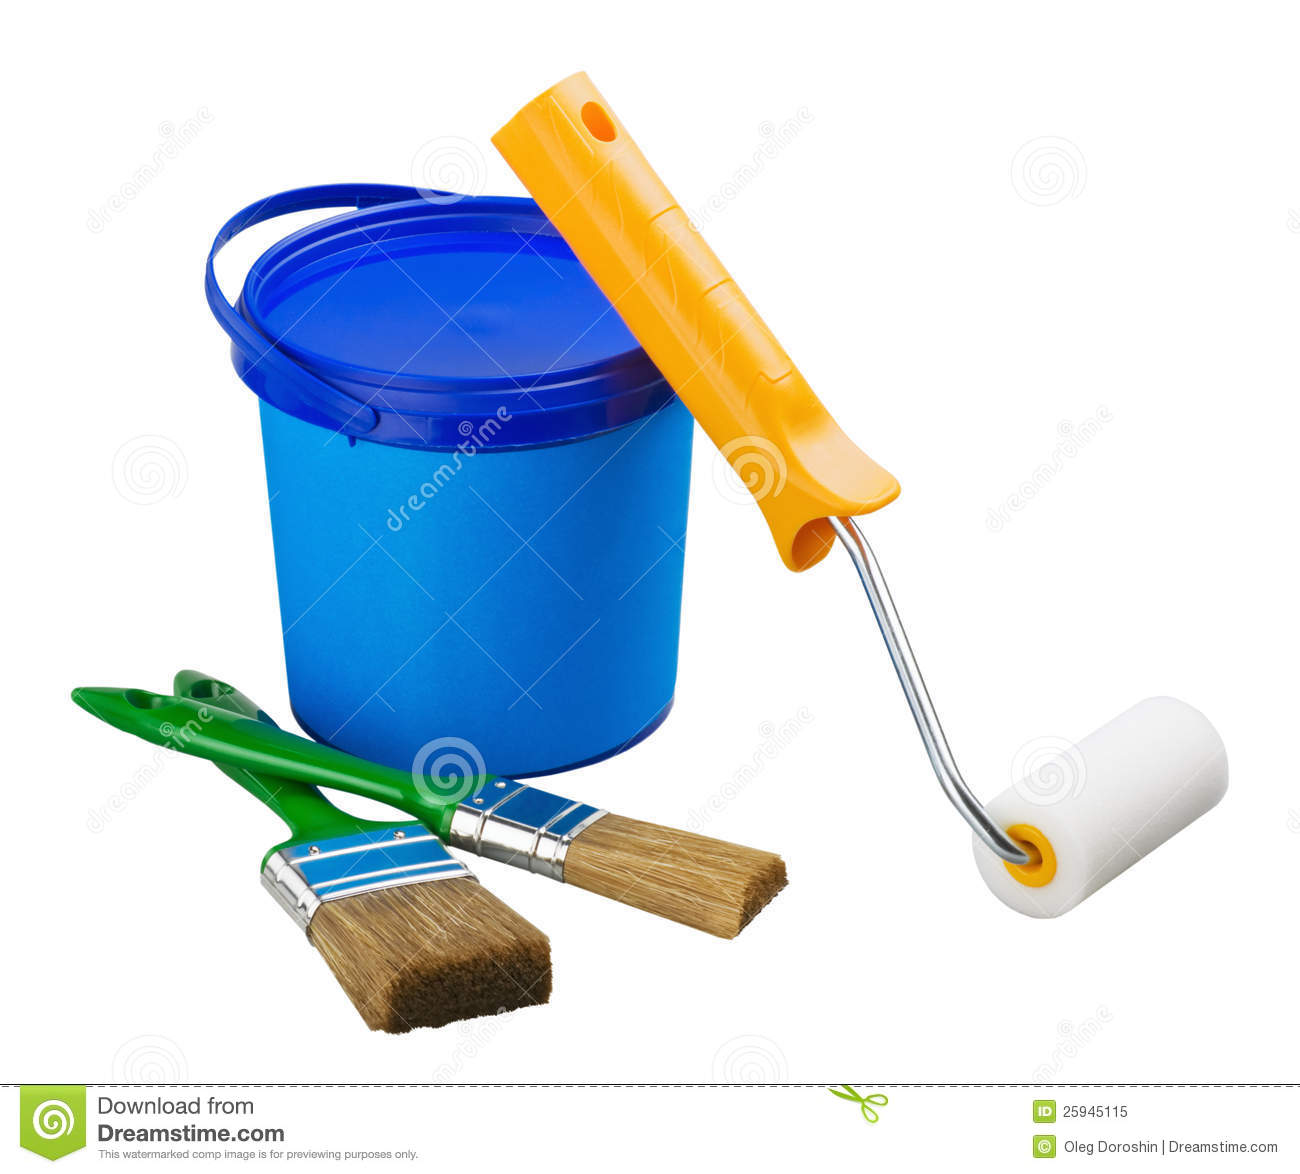 Painting supplies and tools stock image image of objects background 25945115 - Painting tool avis ...